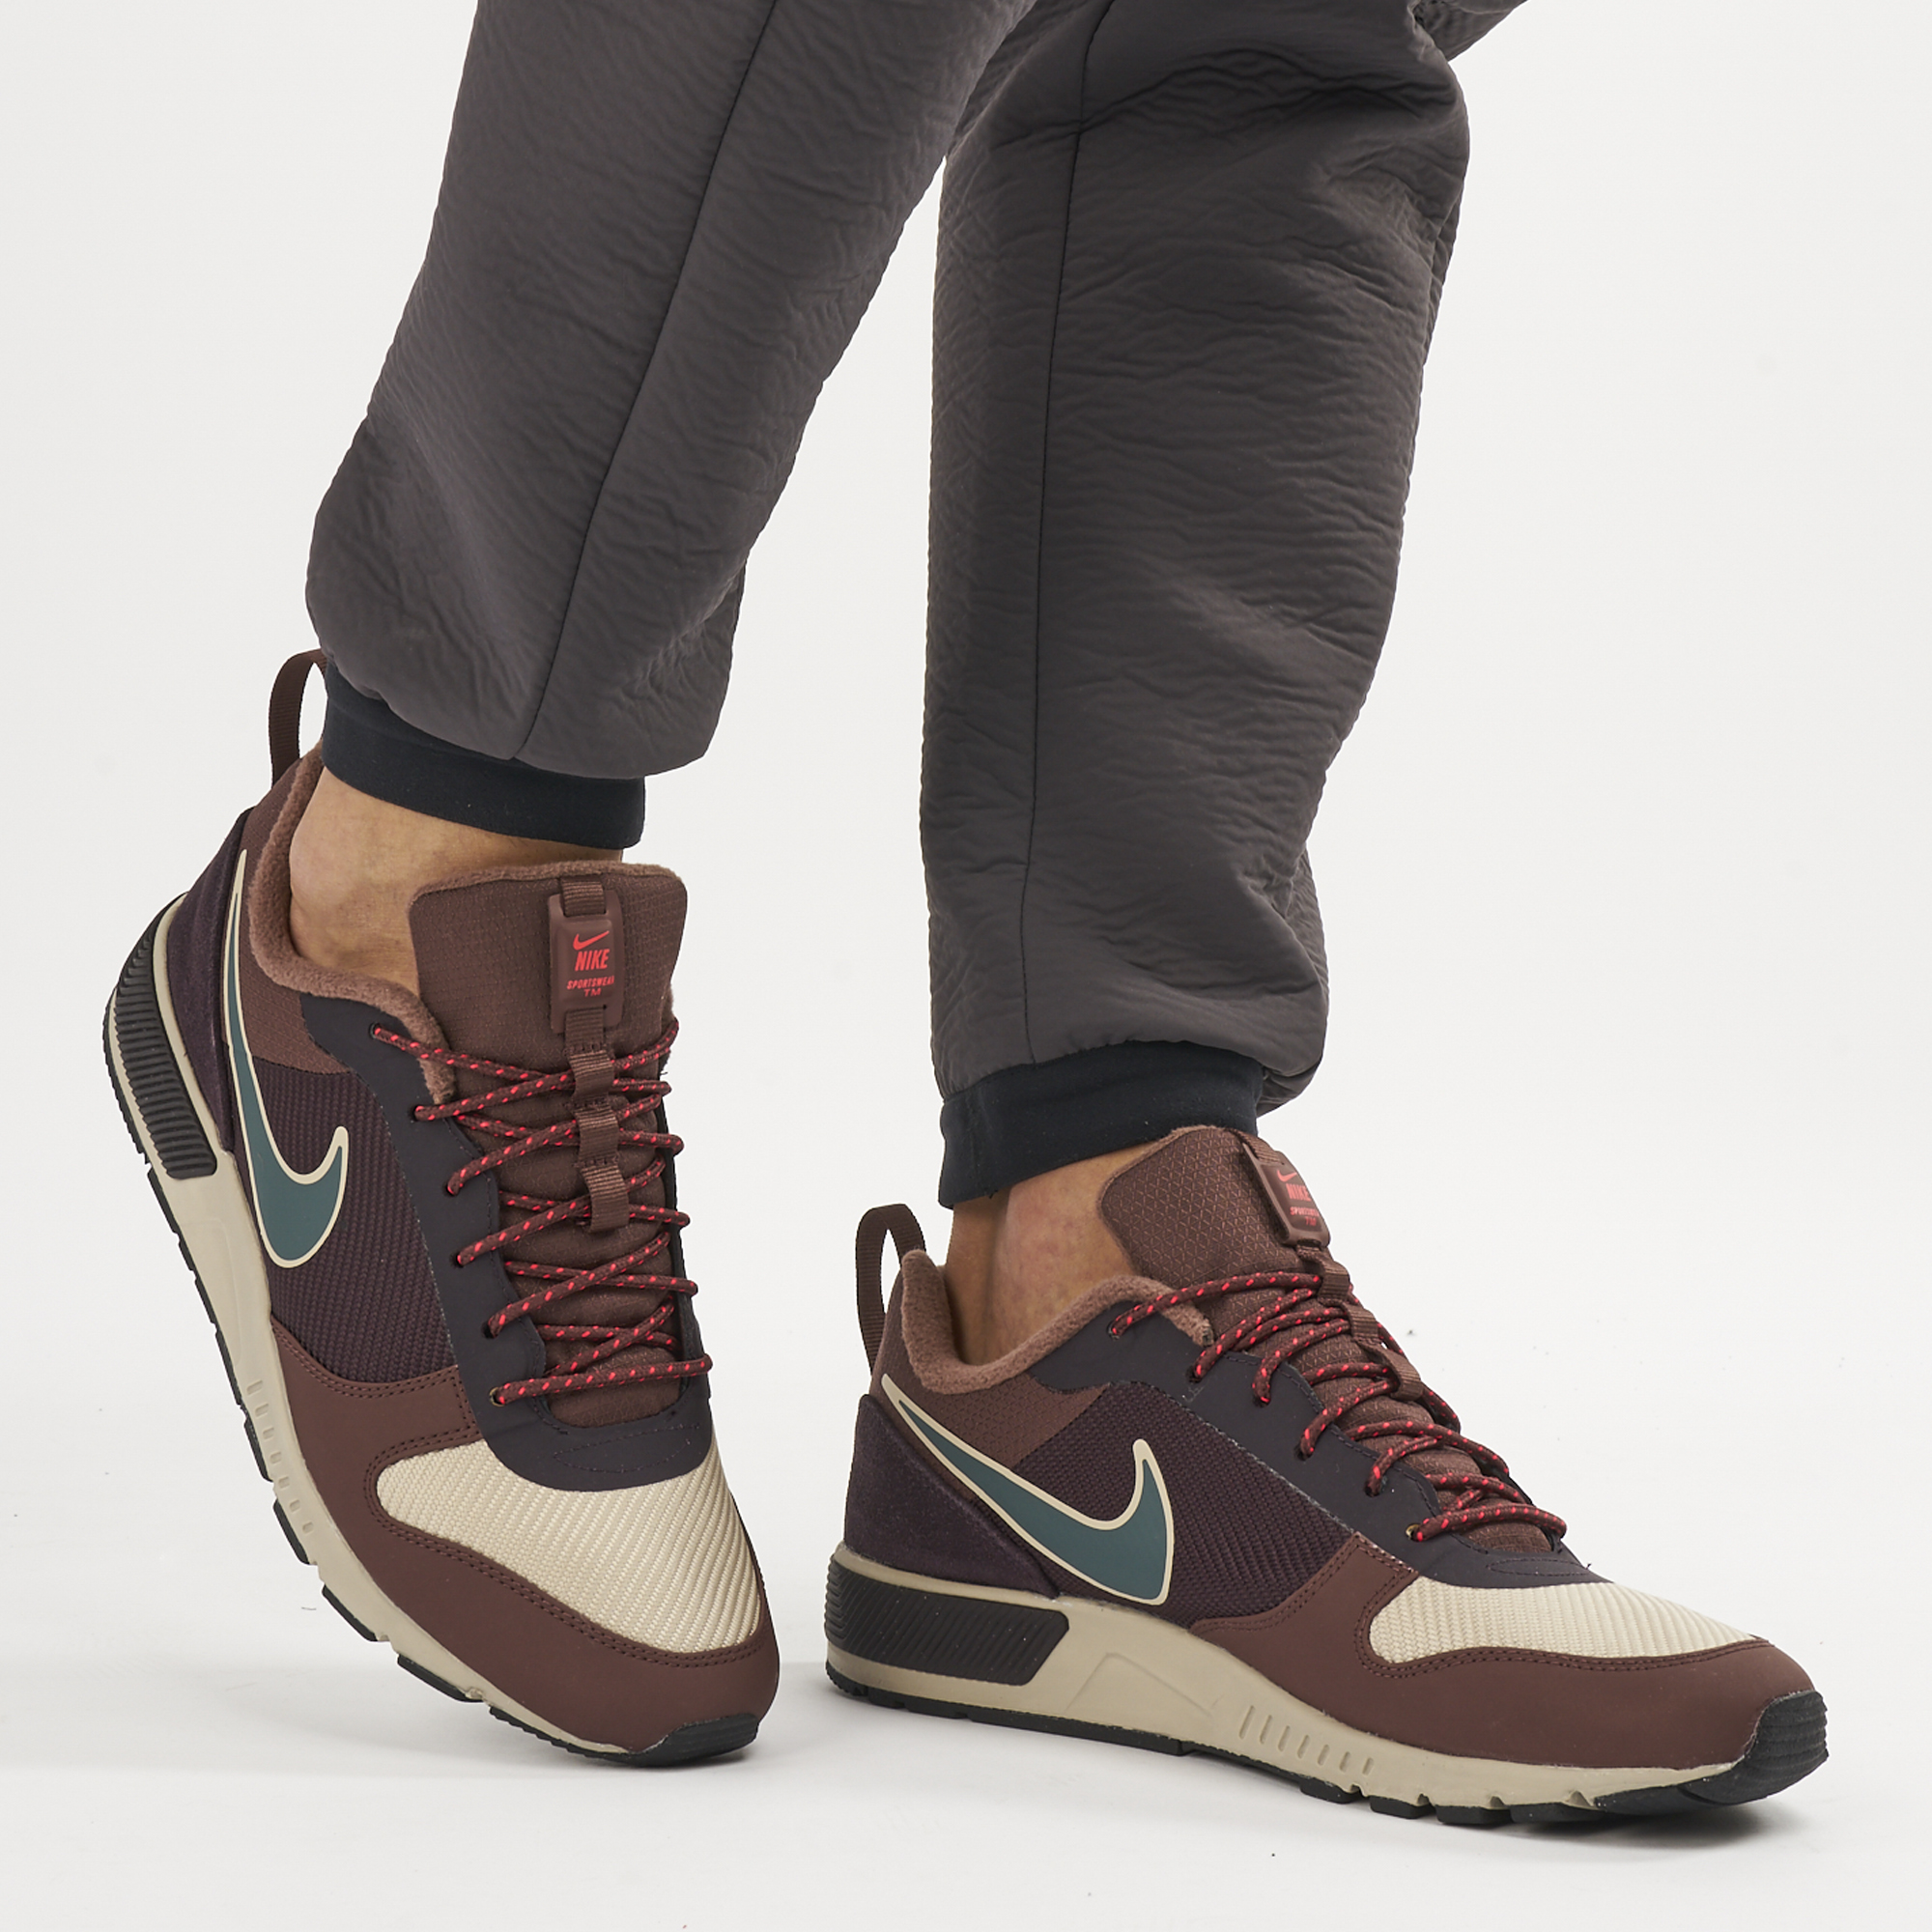 Nike Nightgazer Trail Shoe | Sneakers | Shoes | Men's Sale